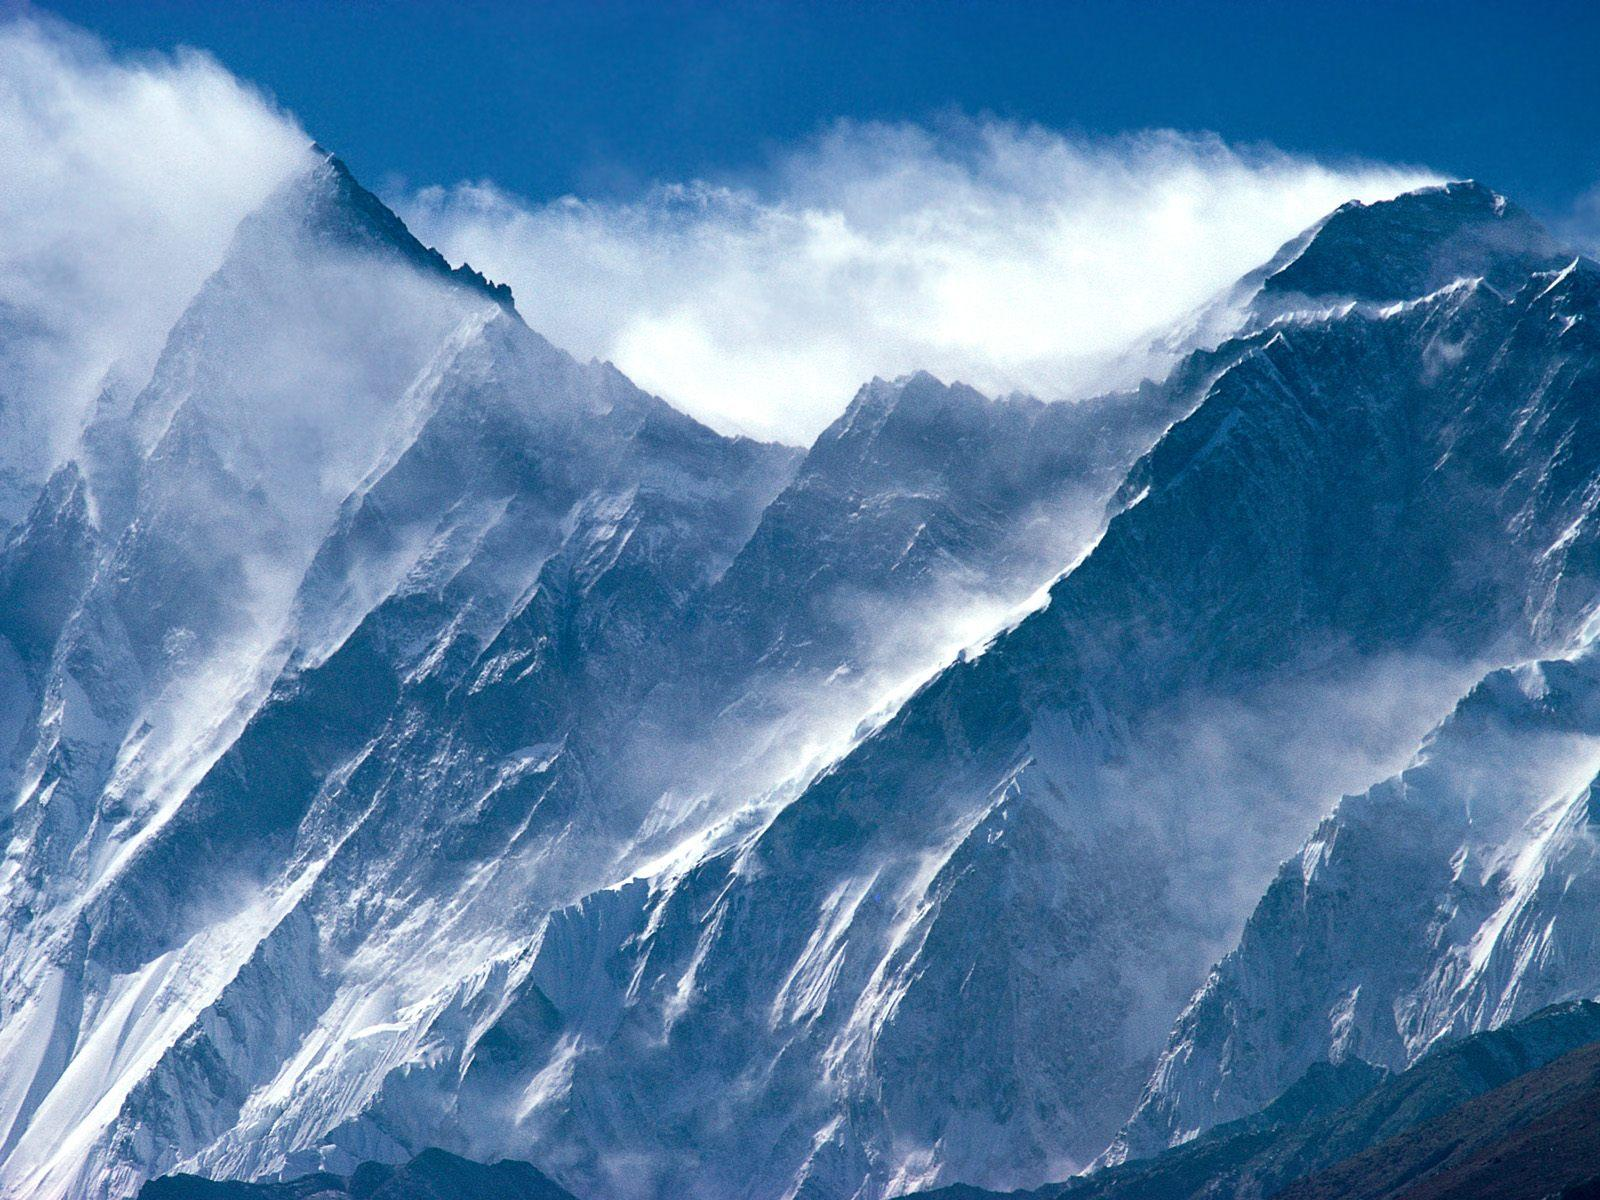 Himalayan Mountains Wallpaper